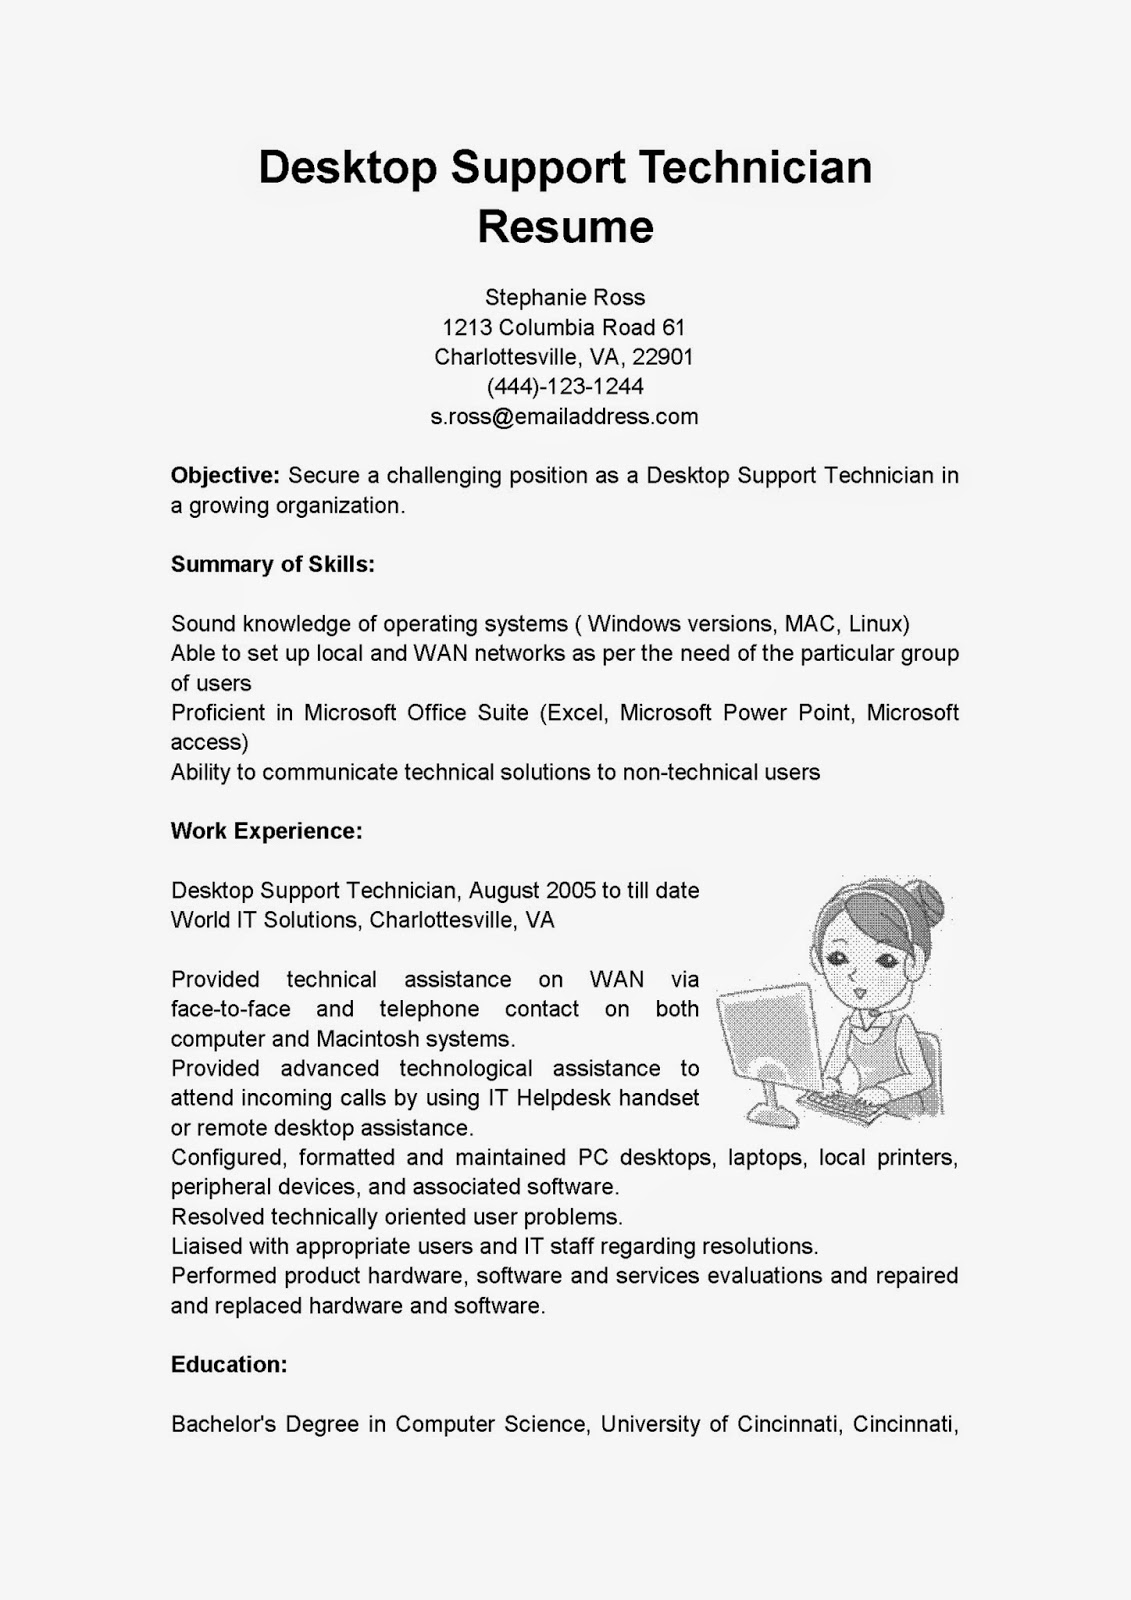 Desktop Support Resume Sample Resume Samples Desktop Support Technician Resume Sample